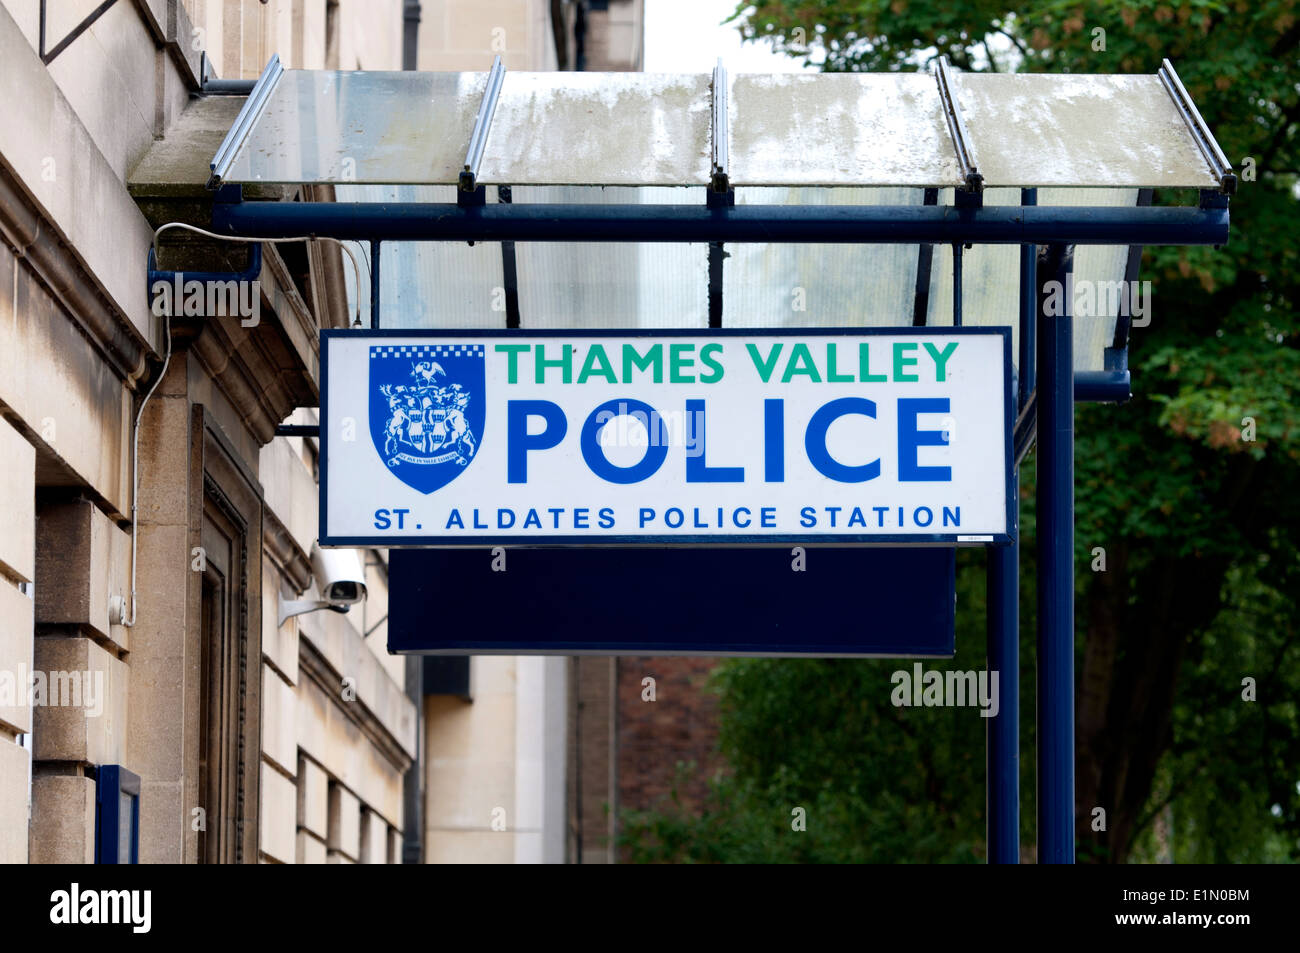 St. Aldates Police Station sign, Oxford, UK - Stock Image